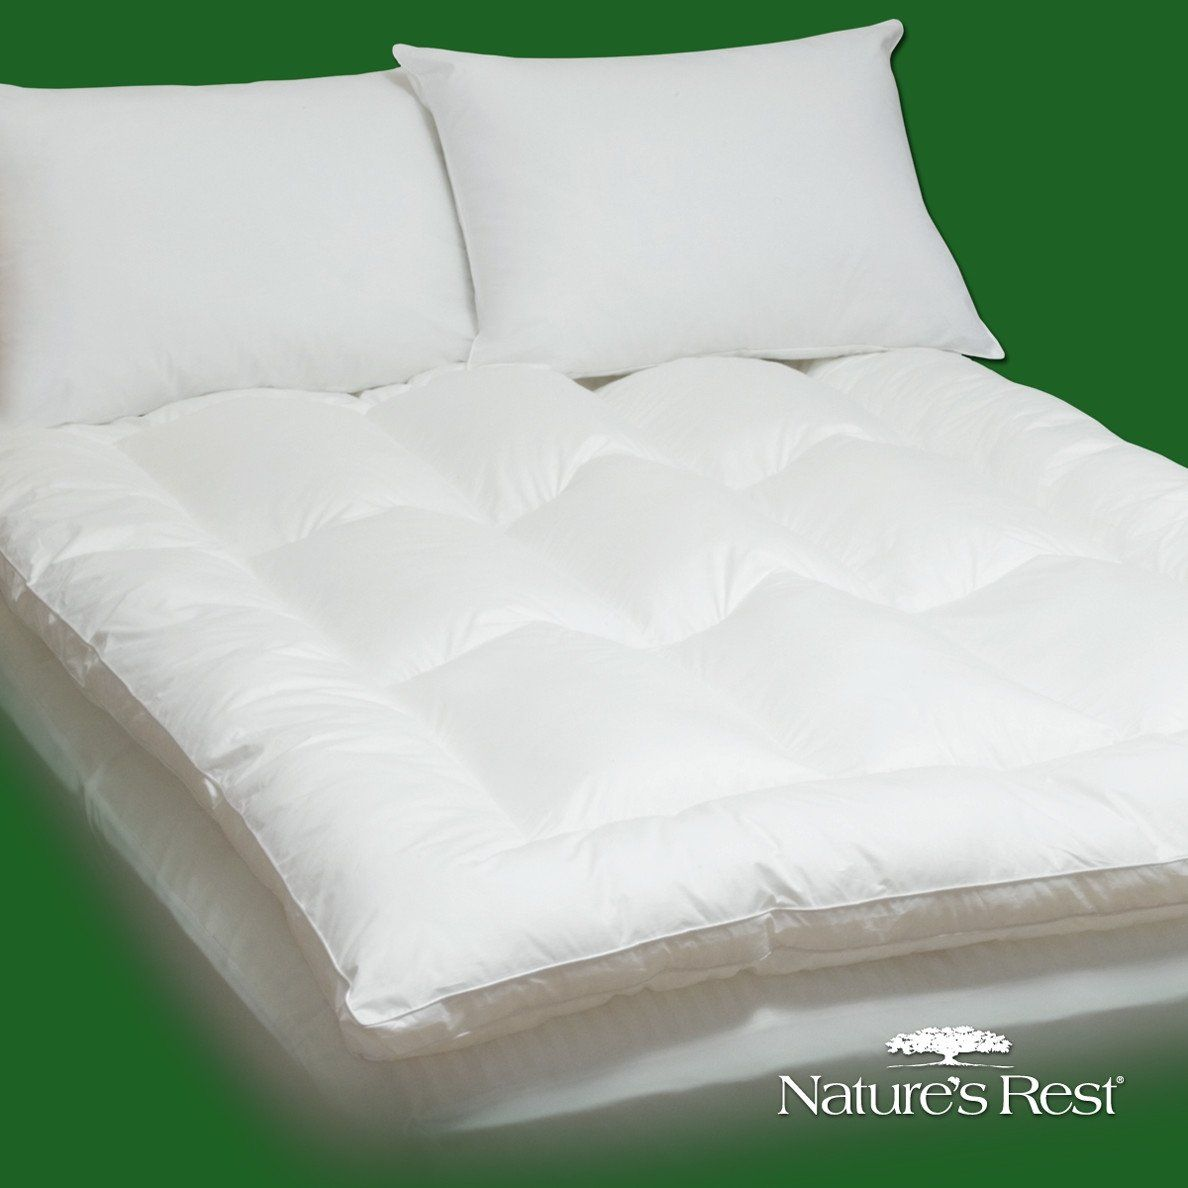 king size fiber bed mattress pad topper in 100 percent cotton bed